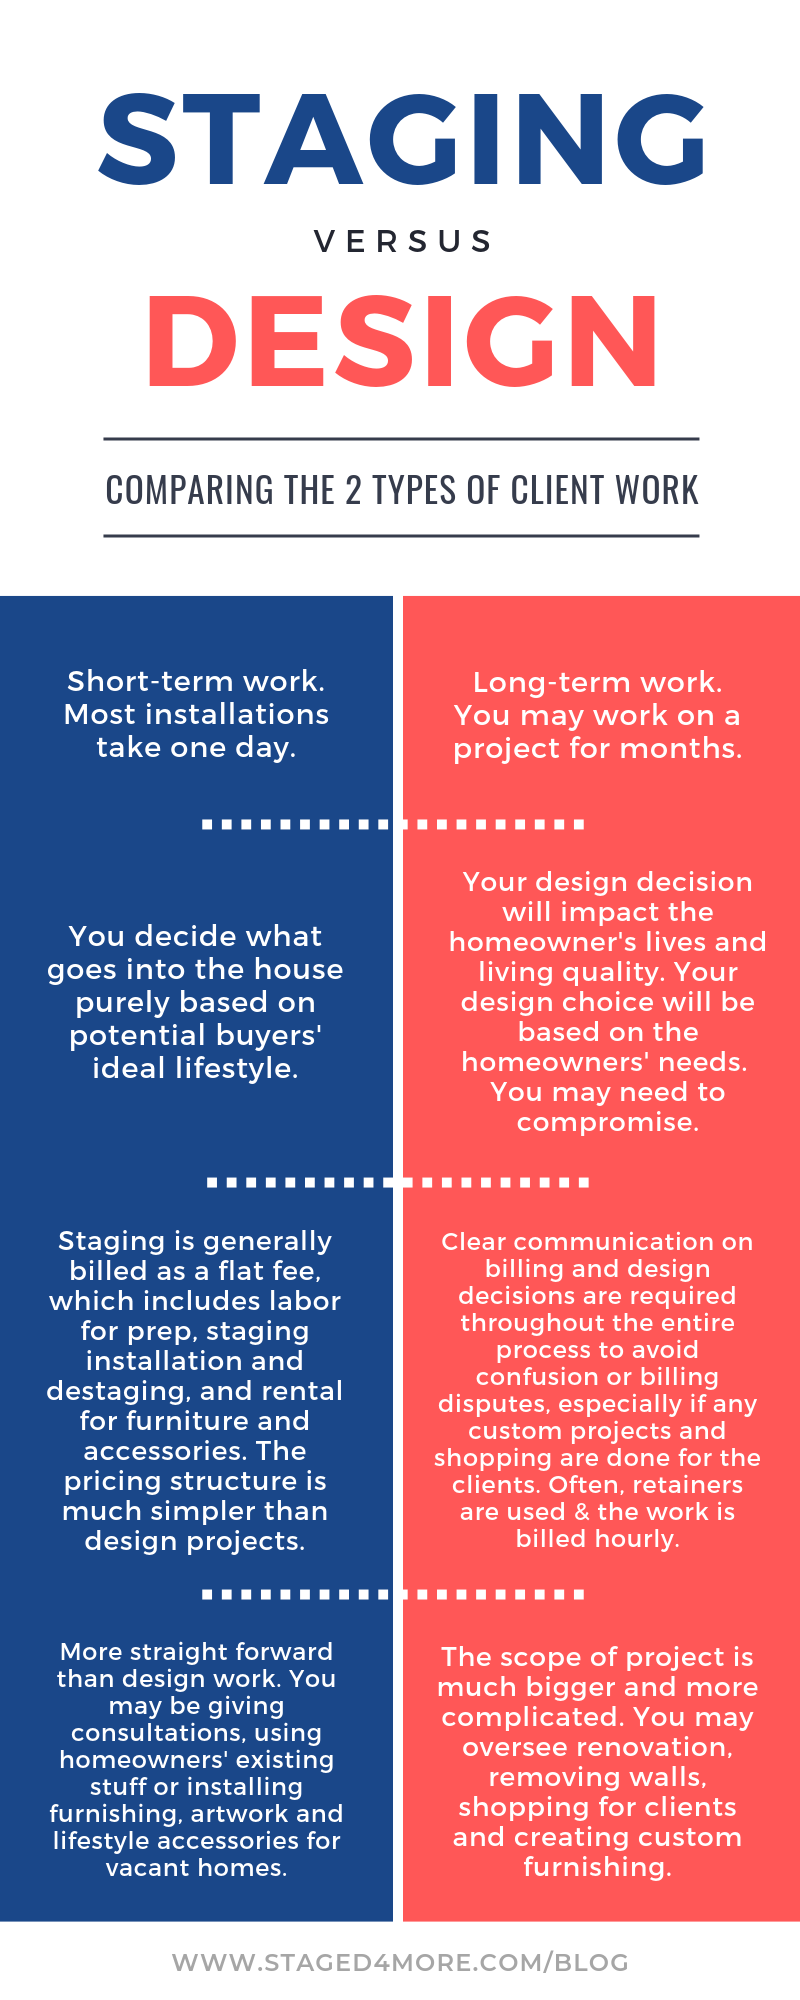 Home staging vs design work when working with clients. Business of home staging blog tips by Staged4more School of Home Staging